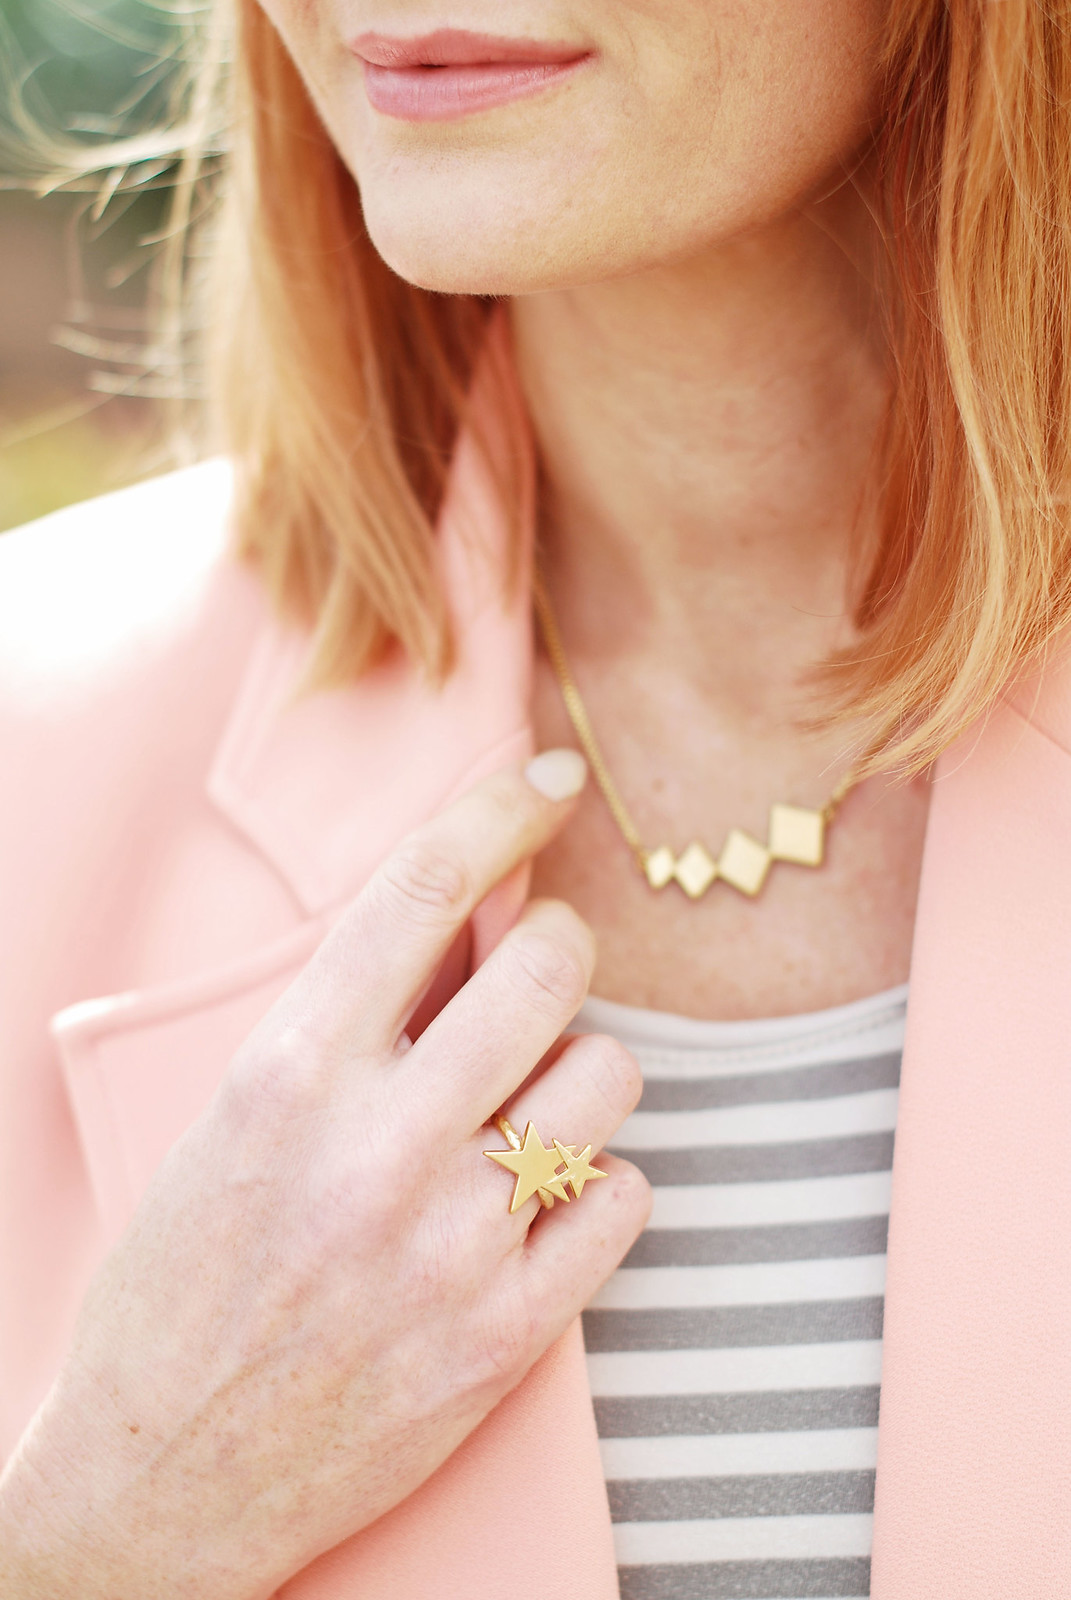 Spring/Summer Style: Peach, Breton striped top, Lizzy O Boutique gold stars ring | Not Dressed As Lamb